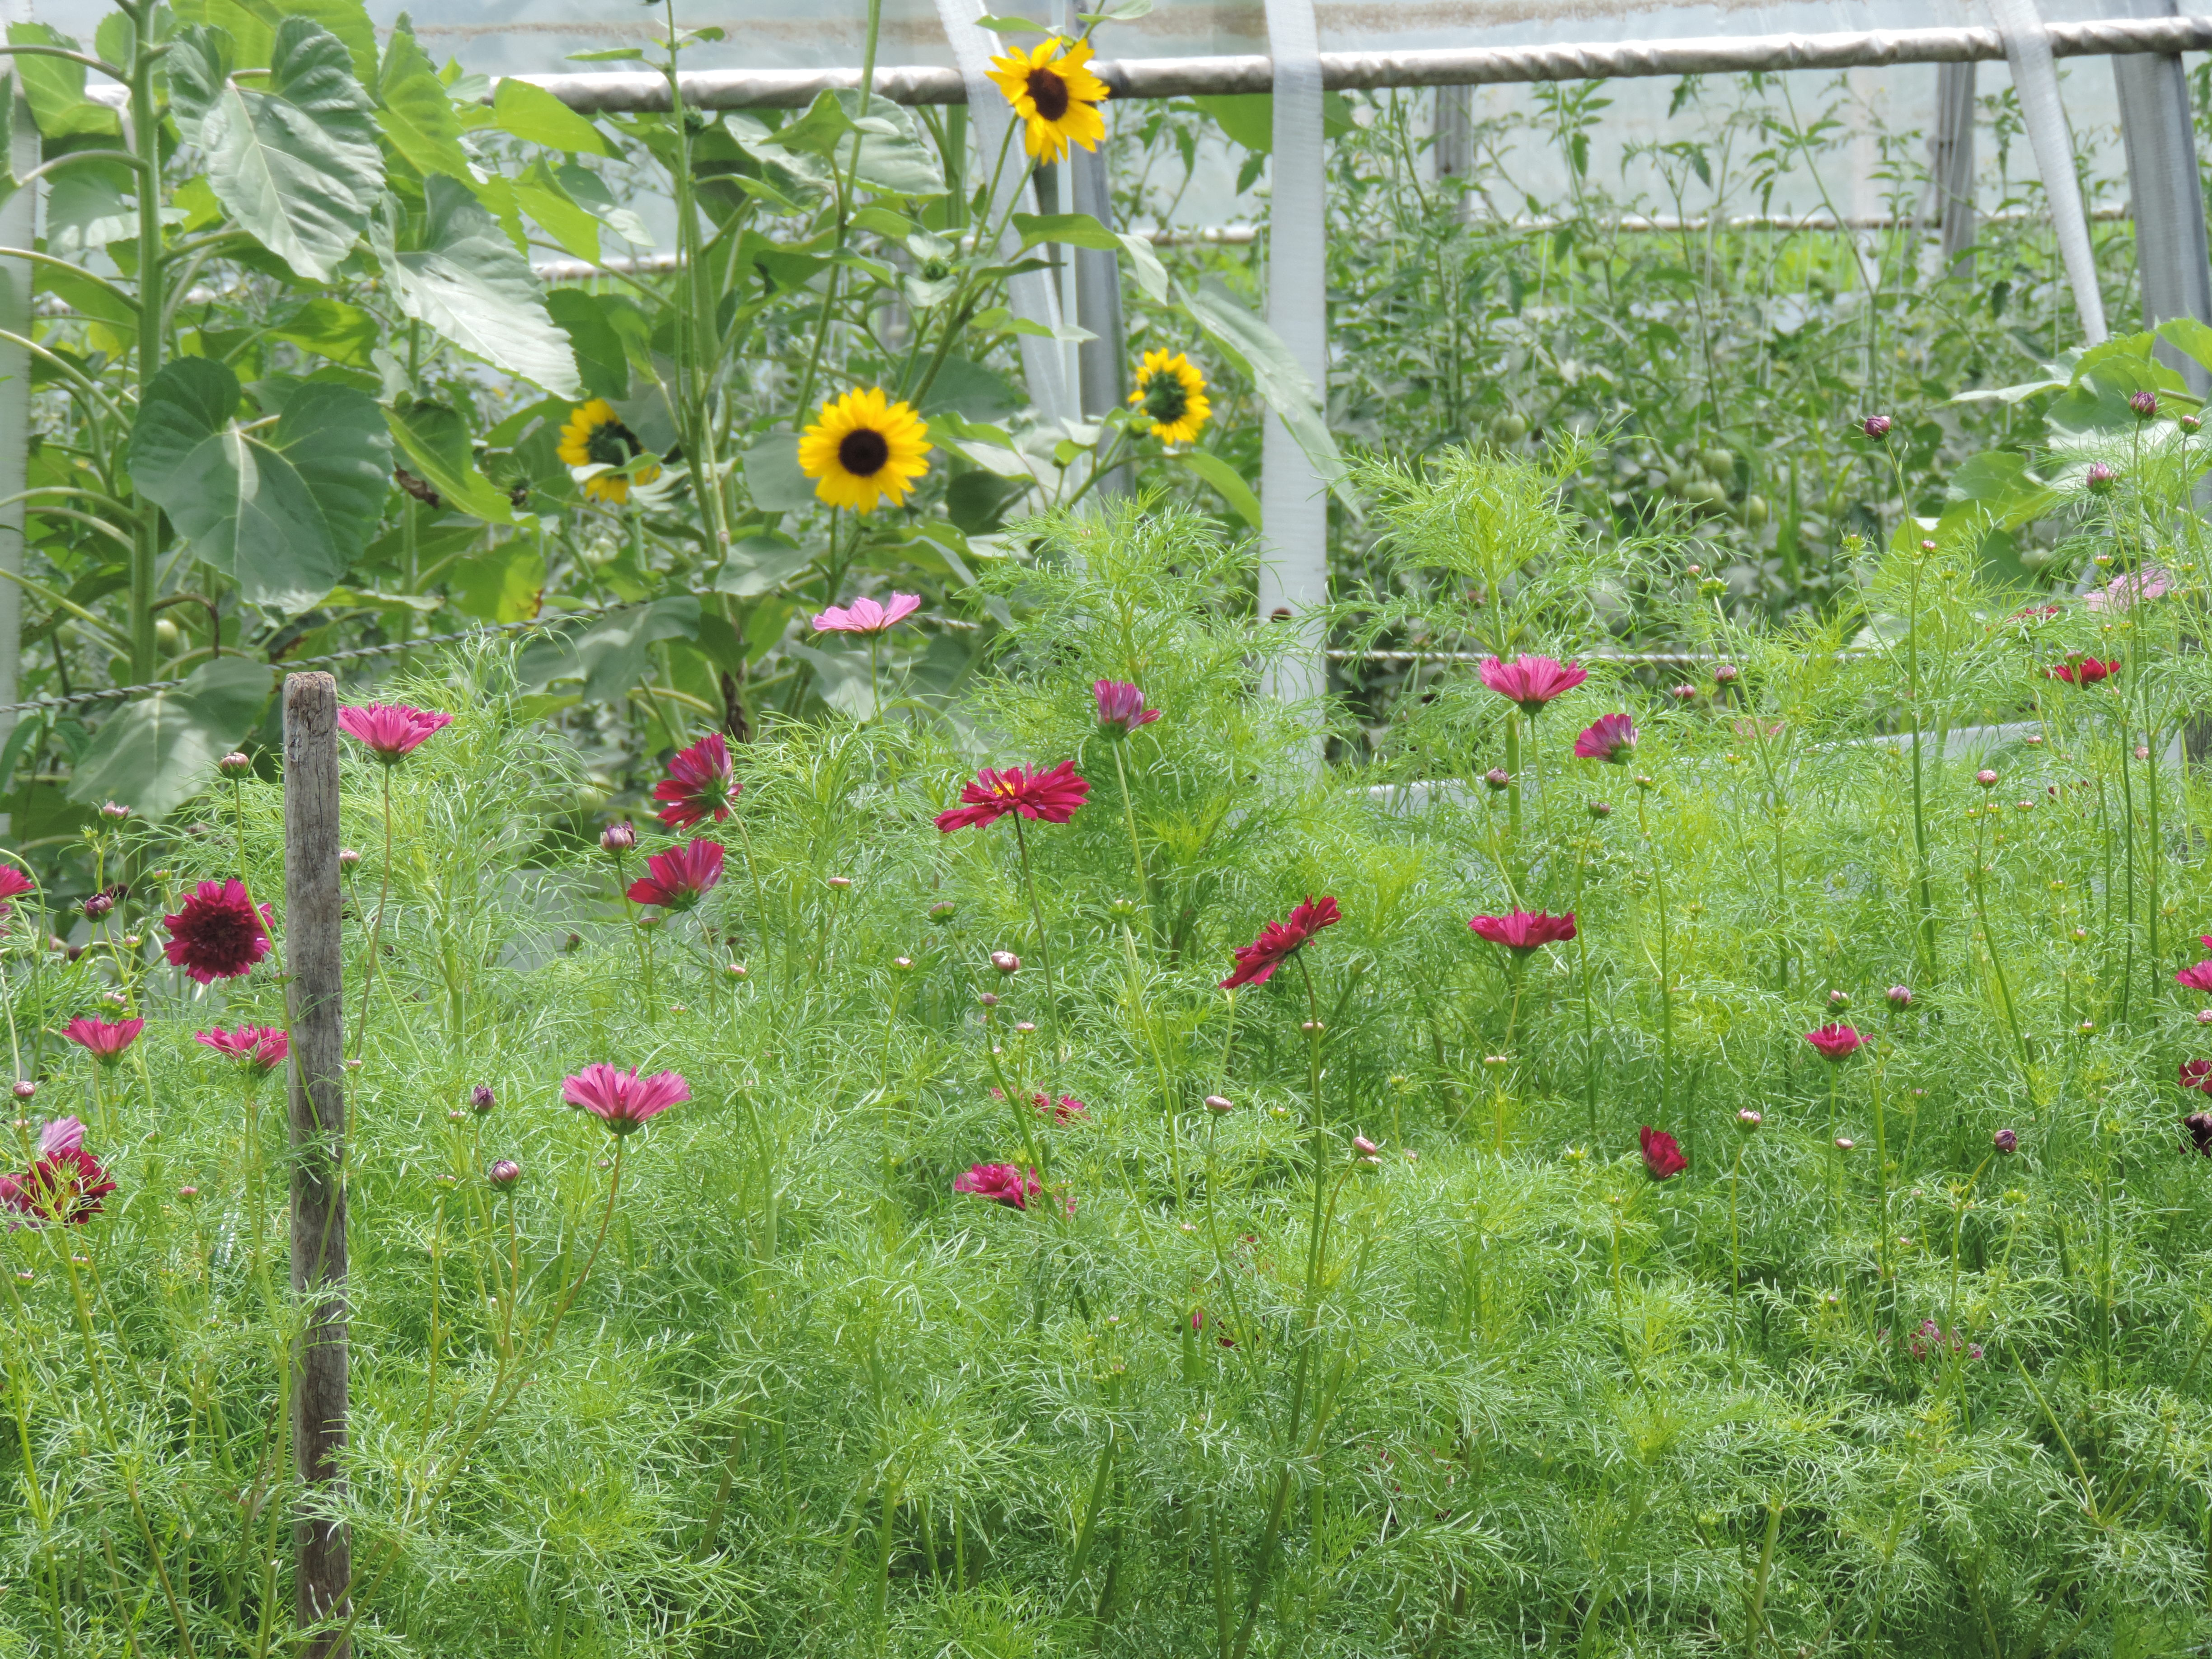 Learn About Sustainable Gardening on Aug. 20